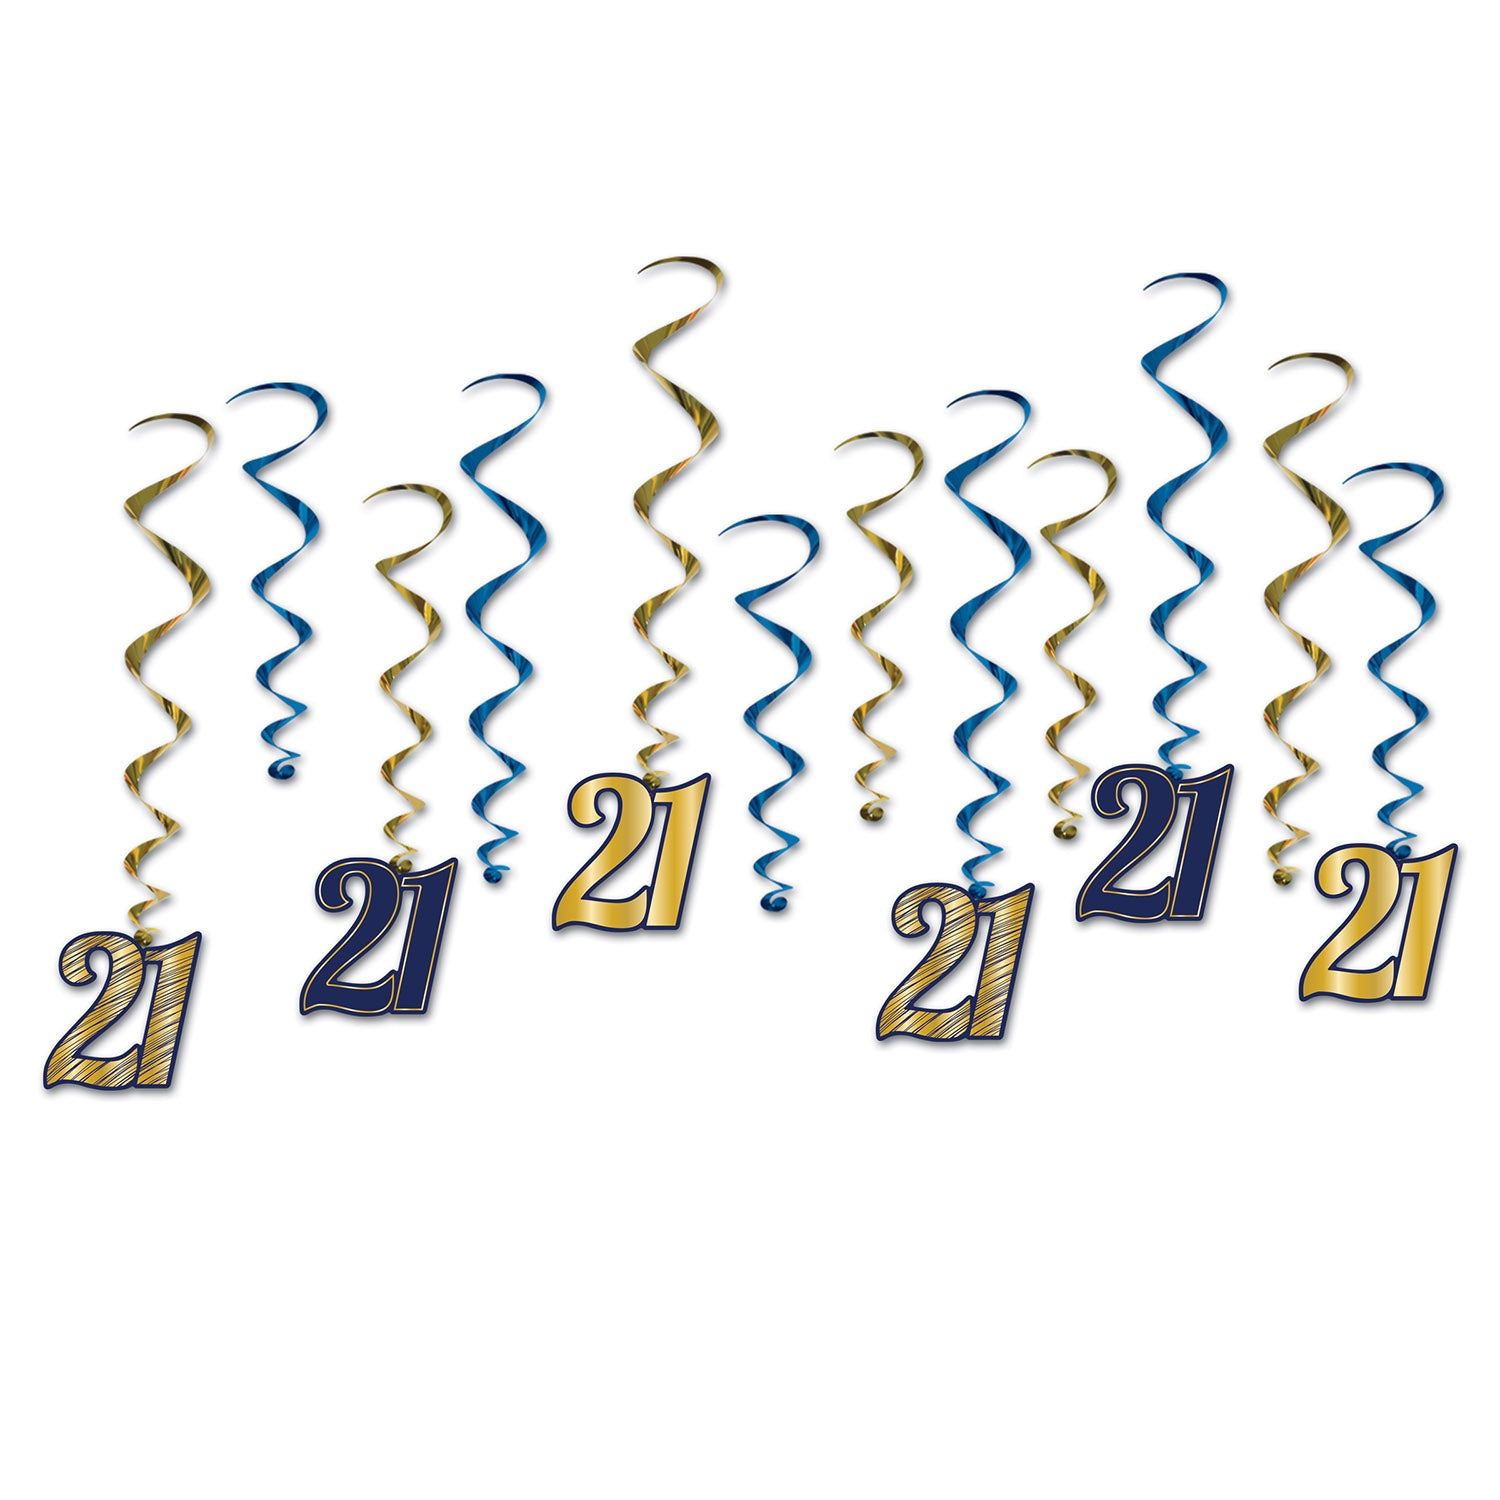 21 Whirls (12/Pkg) by Beistle - 21st Birthday Theme Decorations